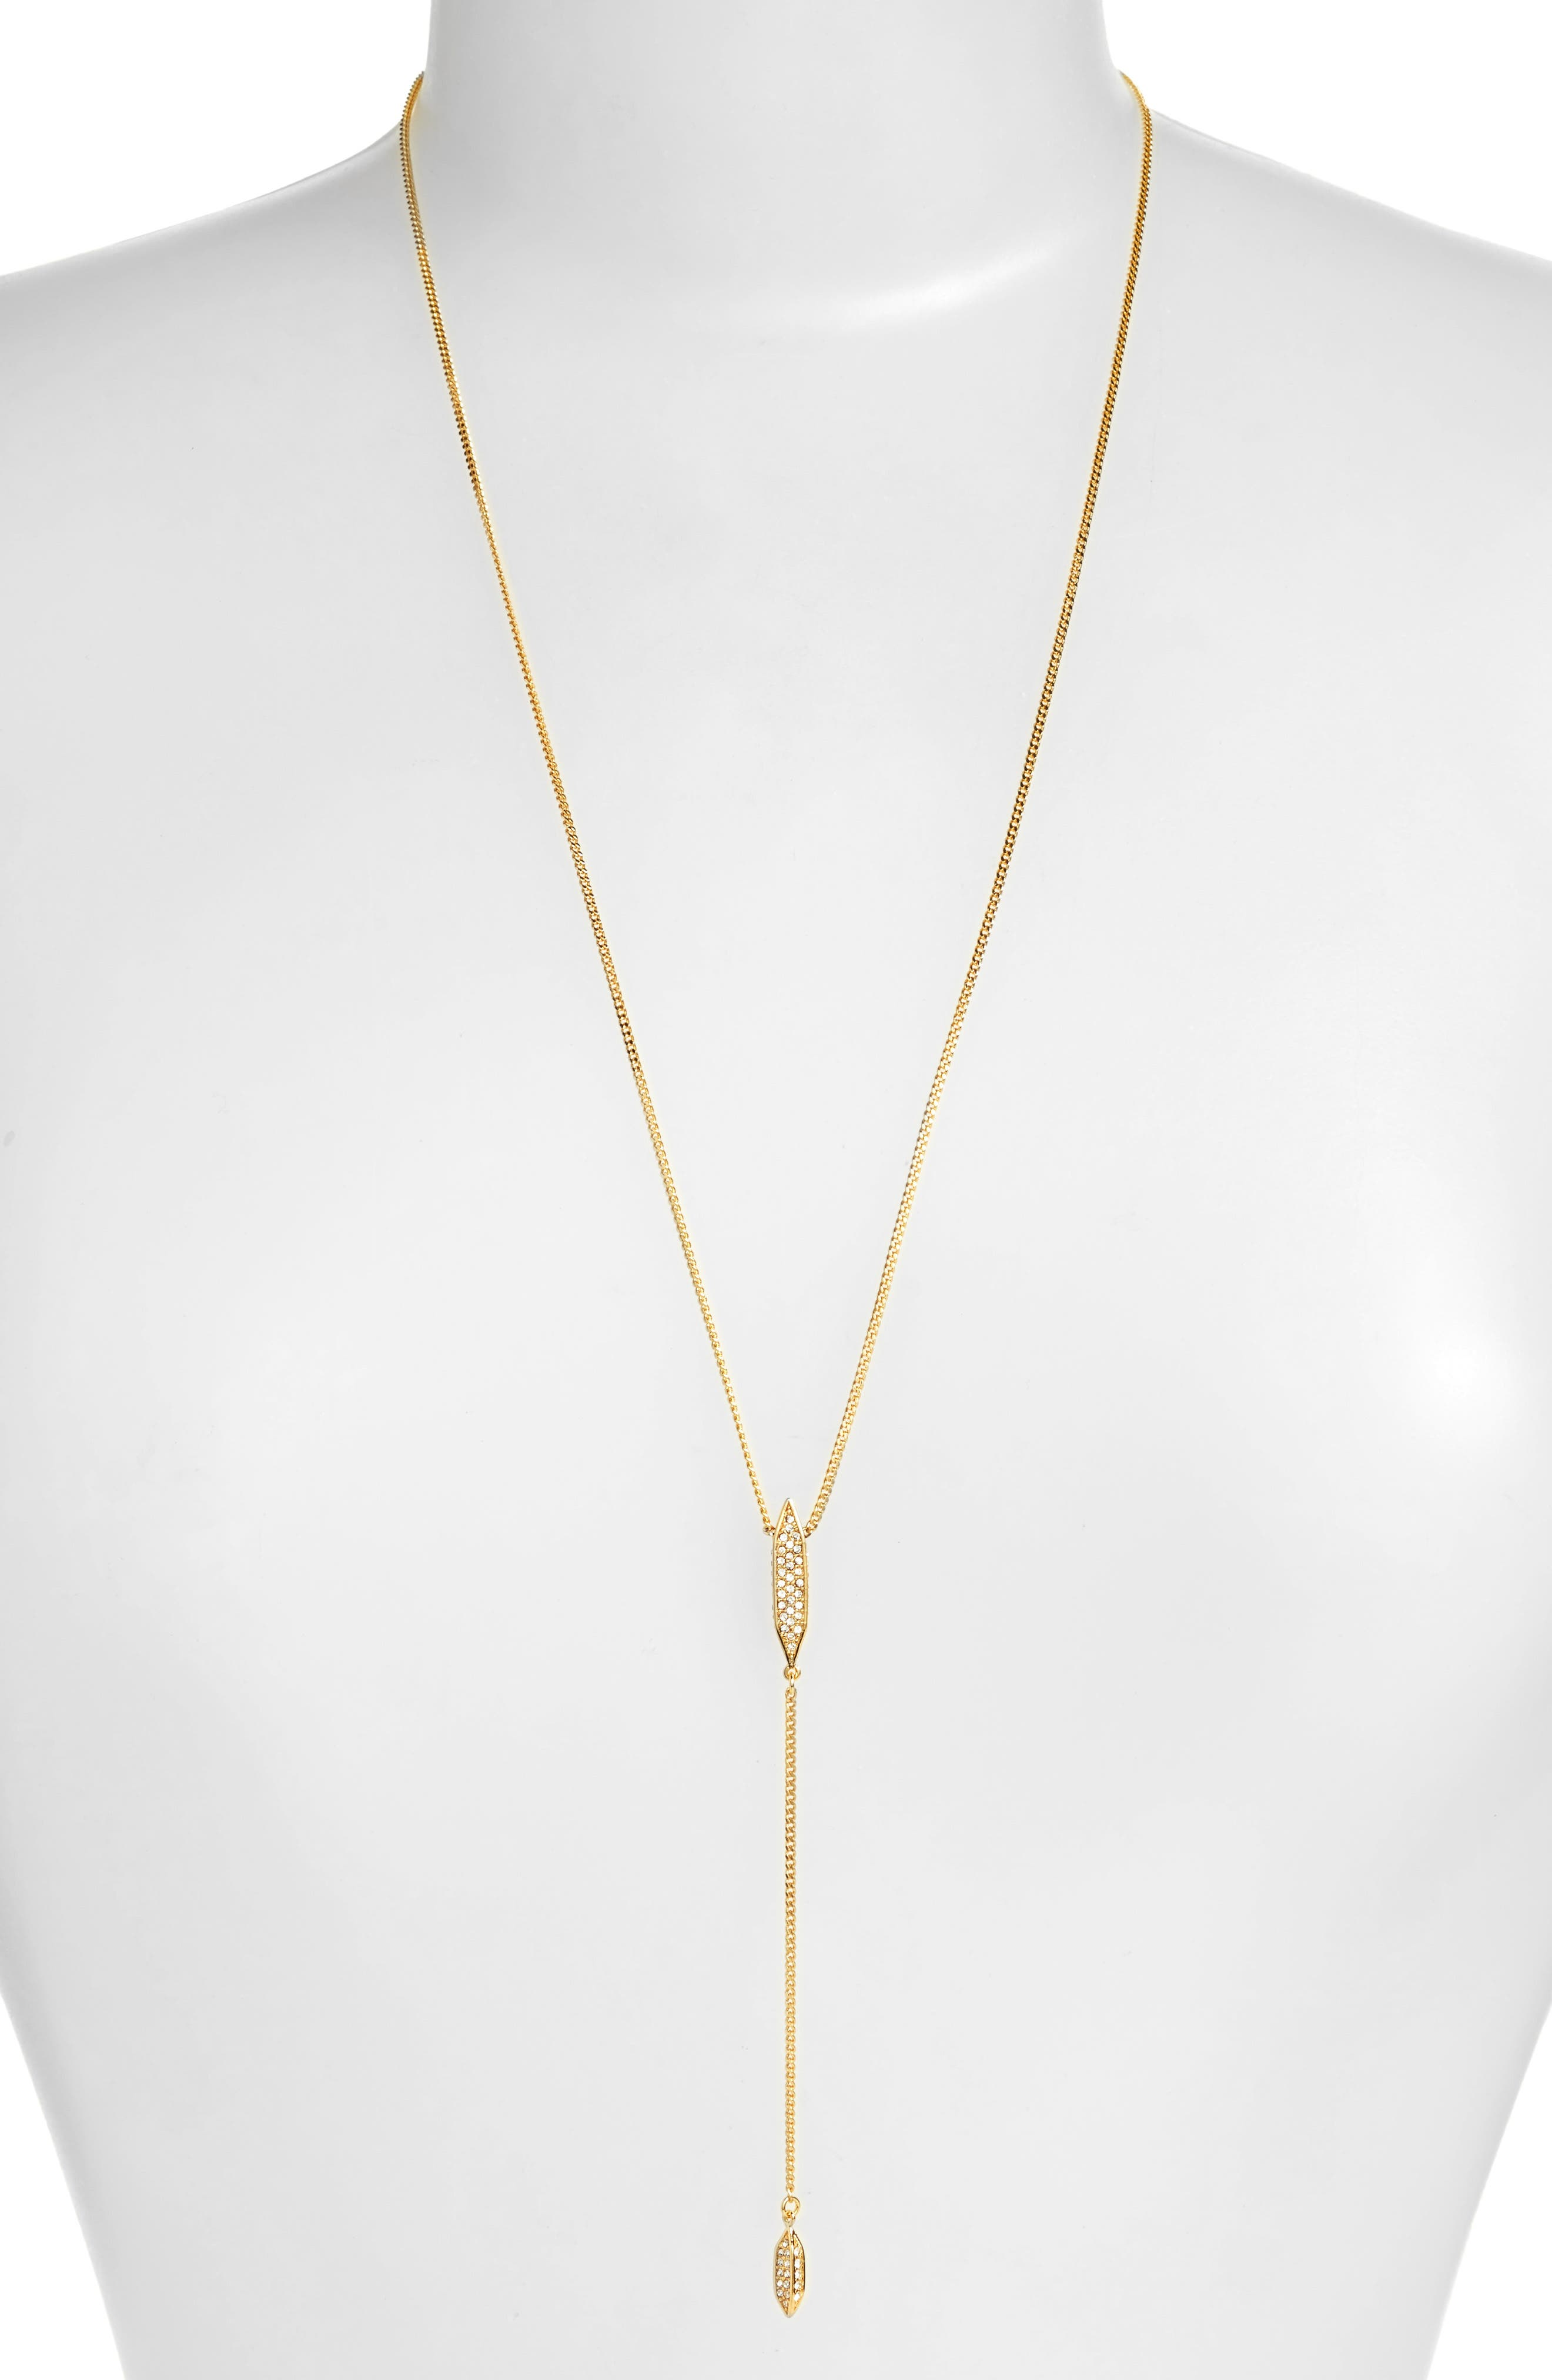 Alternate Image 1 Selected - Vince Camuto Crystal Y-Necklace